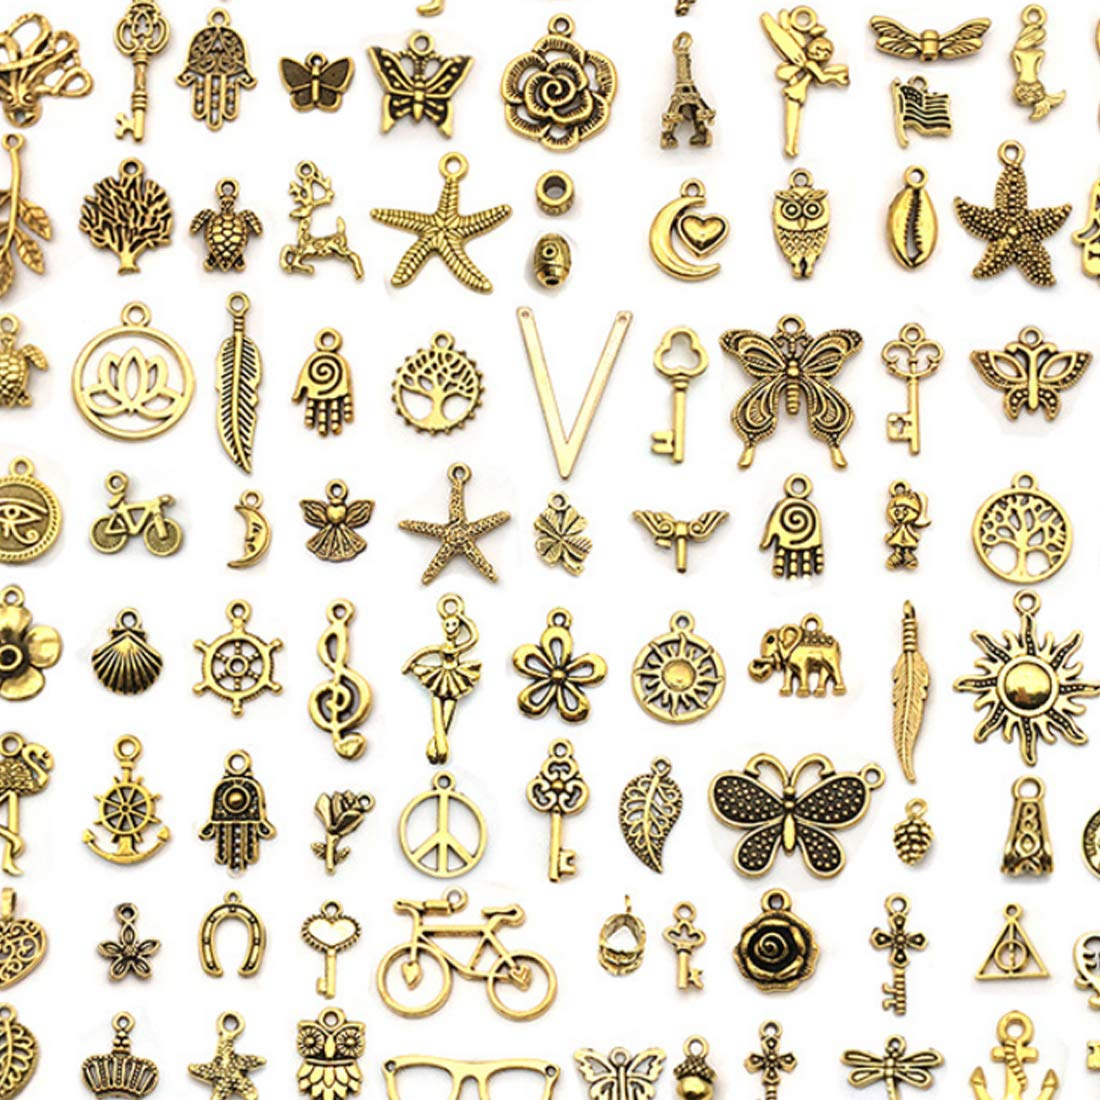 JIALEEY 100Pcs Tibetan Antique Gold Charm Mixed Pendants DIY for Bracelet Necklace Jewelry Making and Crafting